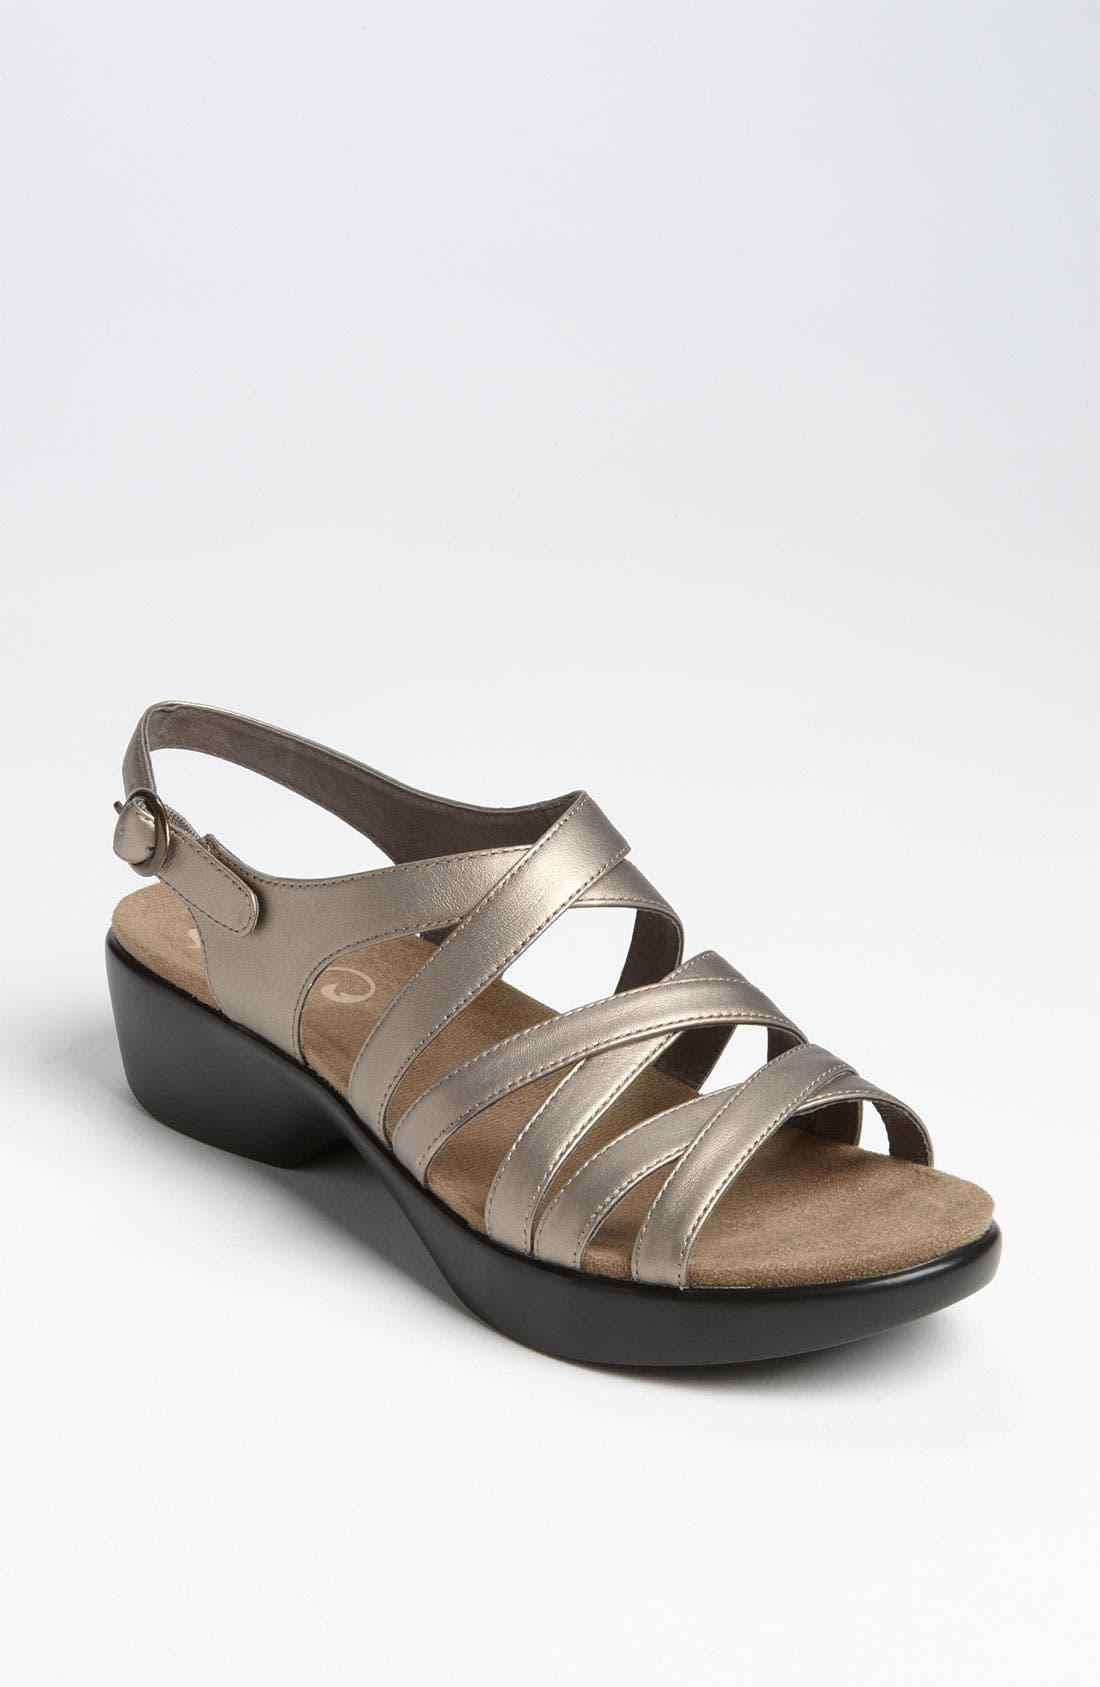 Alternate Image 1 Selected - Dansko 'Dani' Sandal